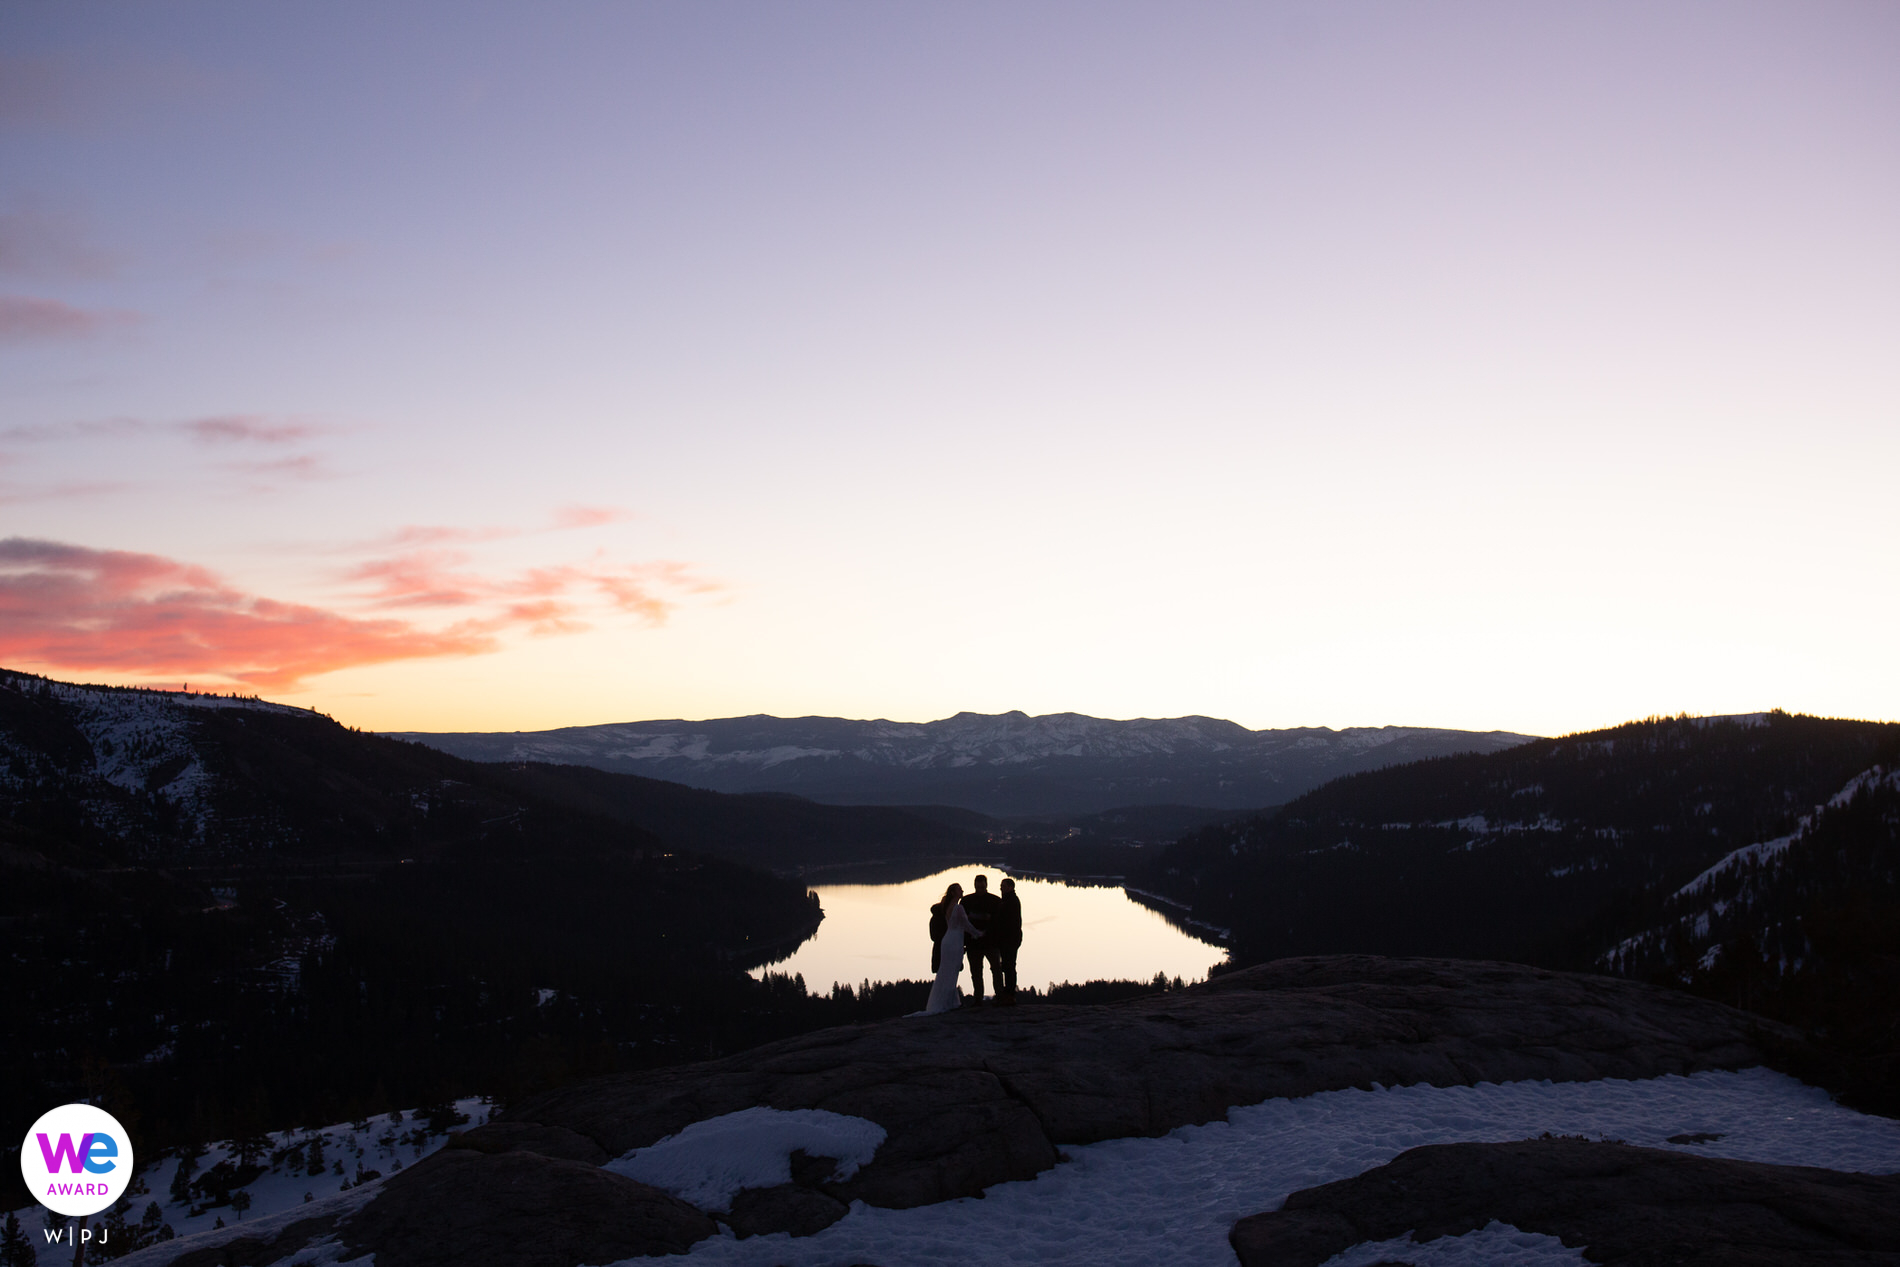 Donner Summit, CA Elopement Photography - The bride, groom, officiant (sister of the bride) and the officiant's husband perform a small elopement ceremony at sunrise on Donner Summit.